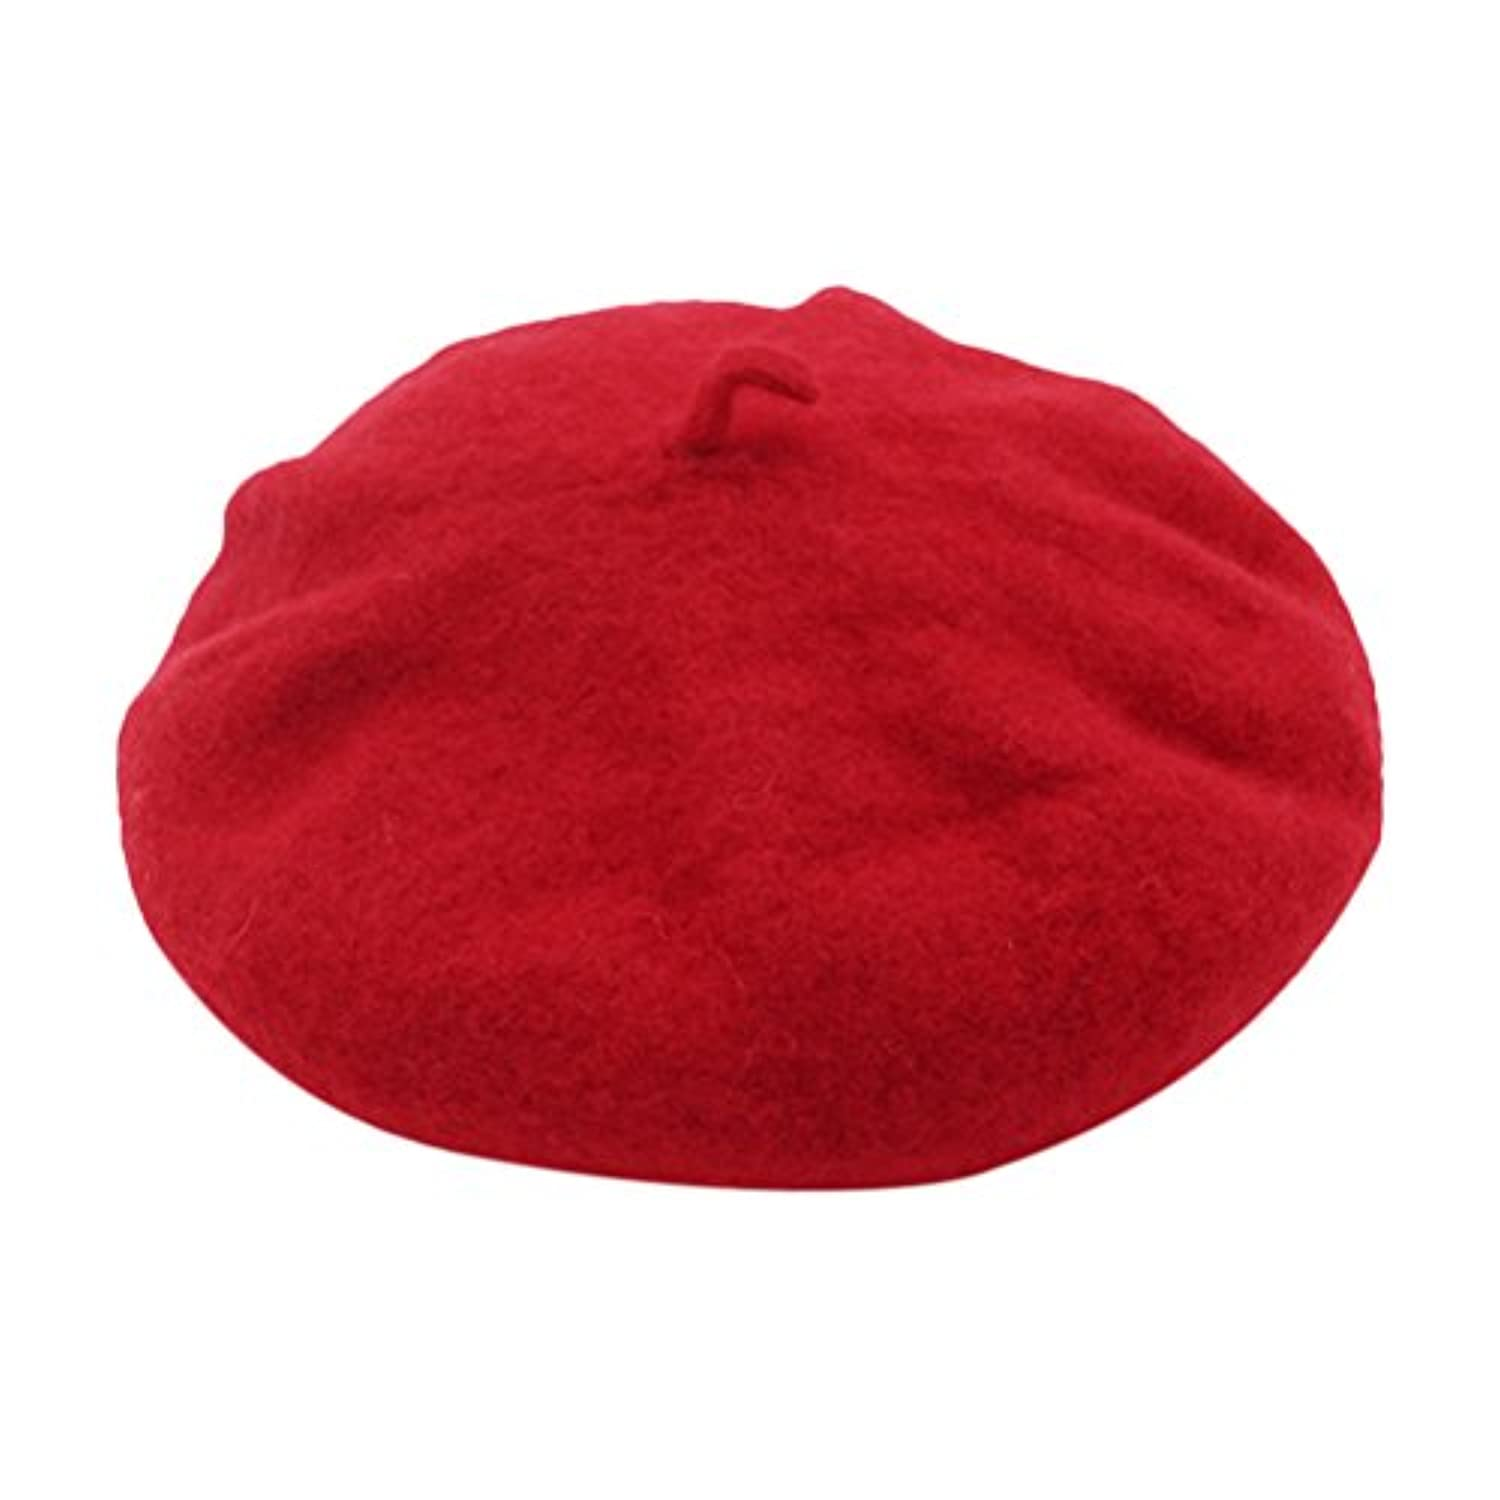 Zhhlinyuan クラシック French artist Solid color Plain Beret Hat Autumn 冬の Womens ビンテージ One Size Bowler キャップ